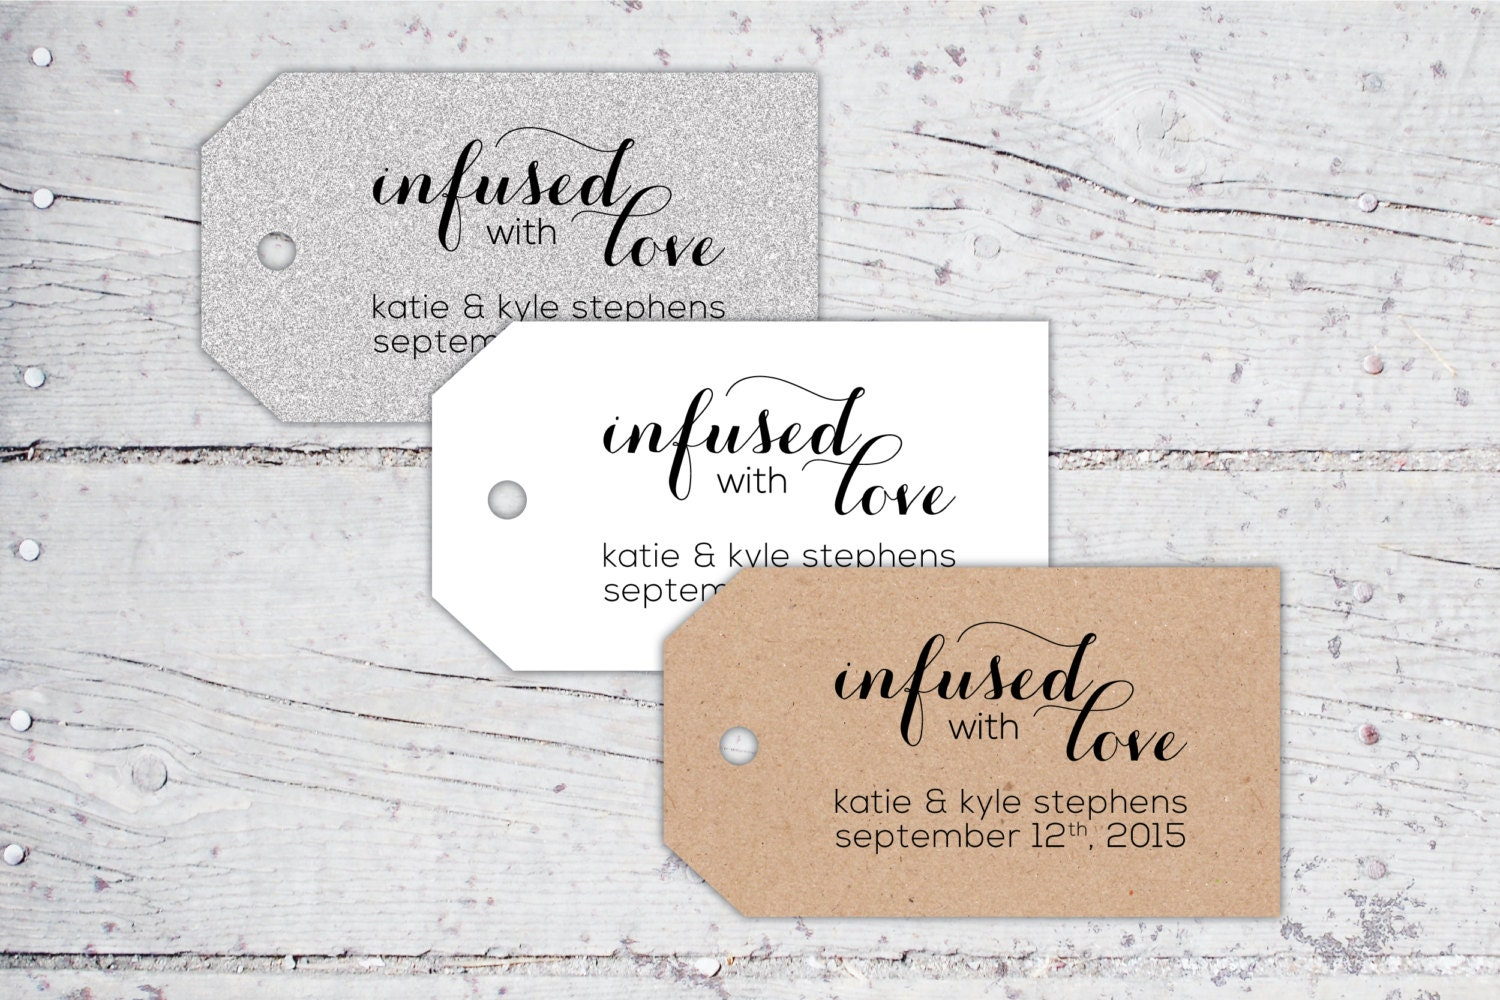 Infused With Love Olive Oil Wedding Favor Tags   3 x 1.7   Print-It ...